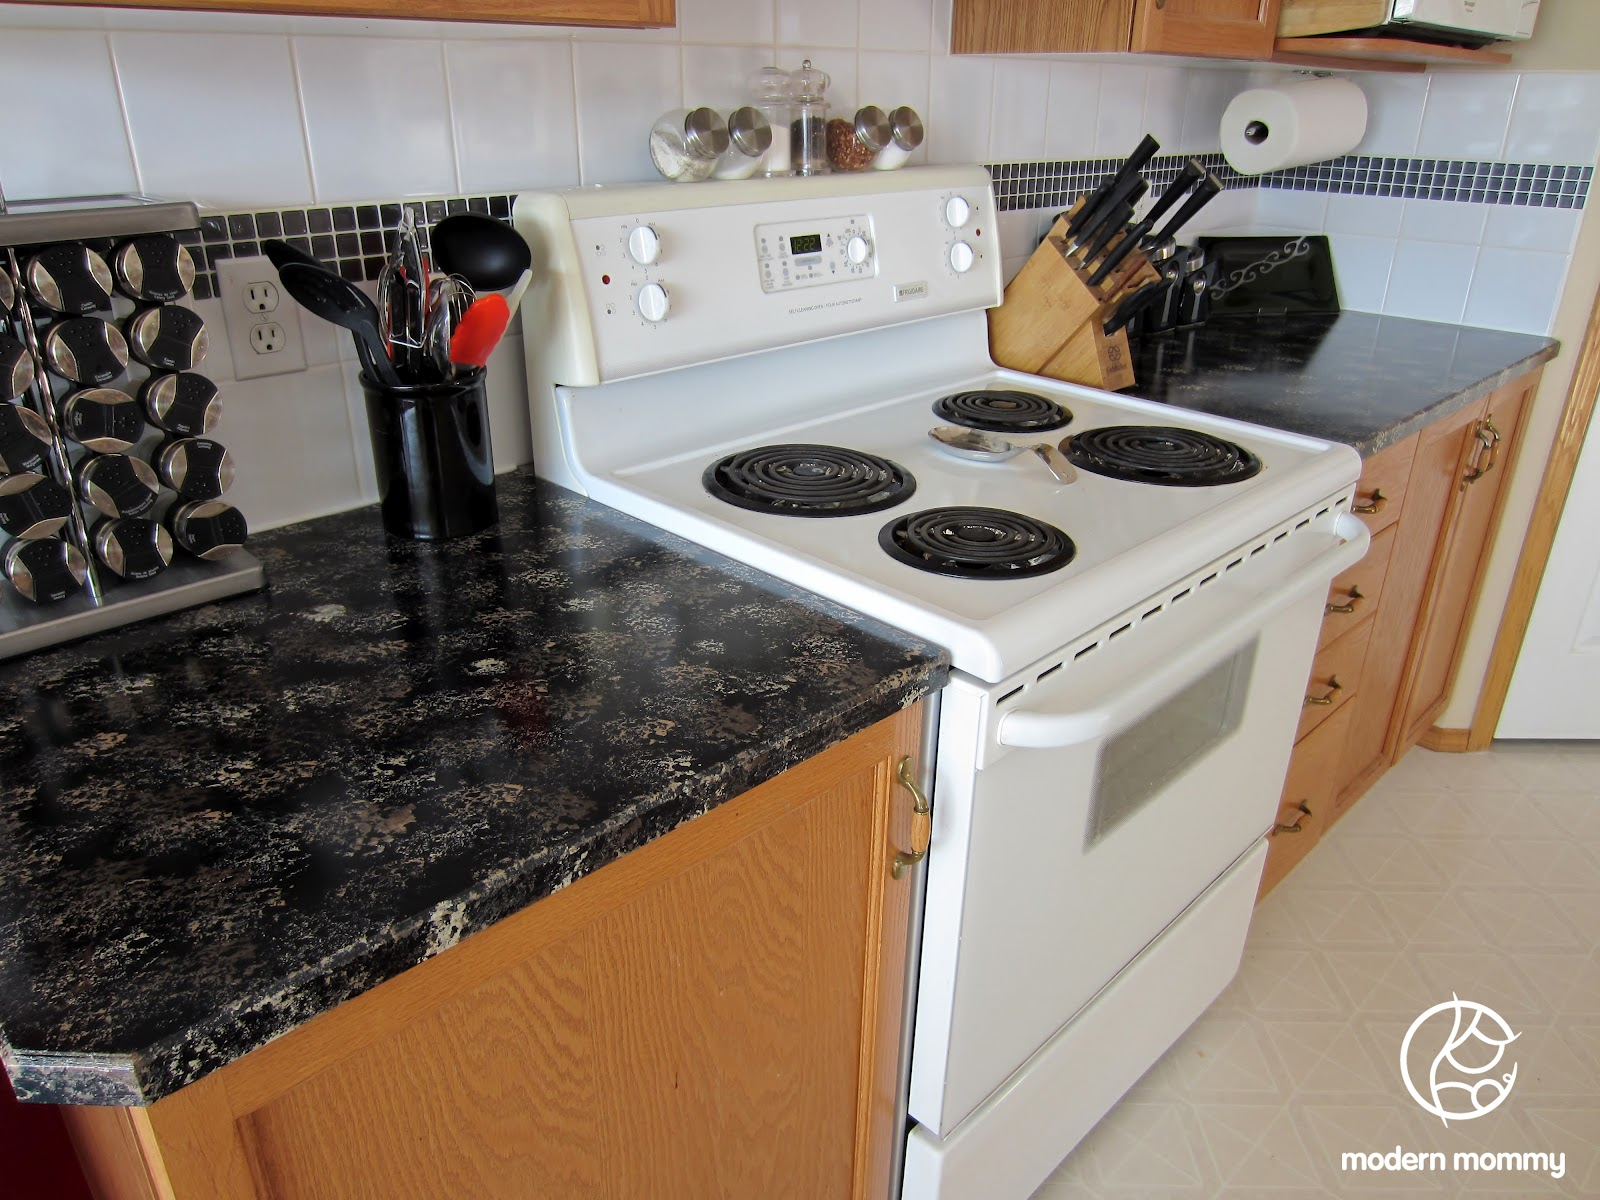 Home DIY Part 2: Granite Countertop Paint In The Kitchen